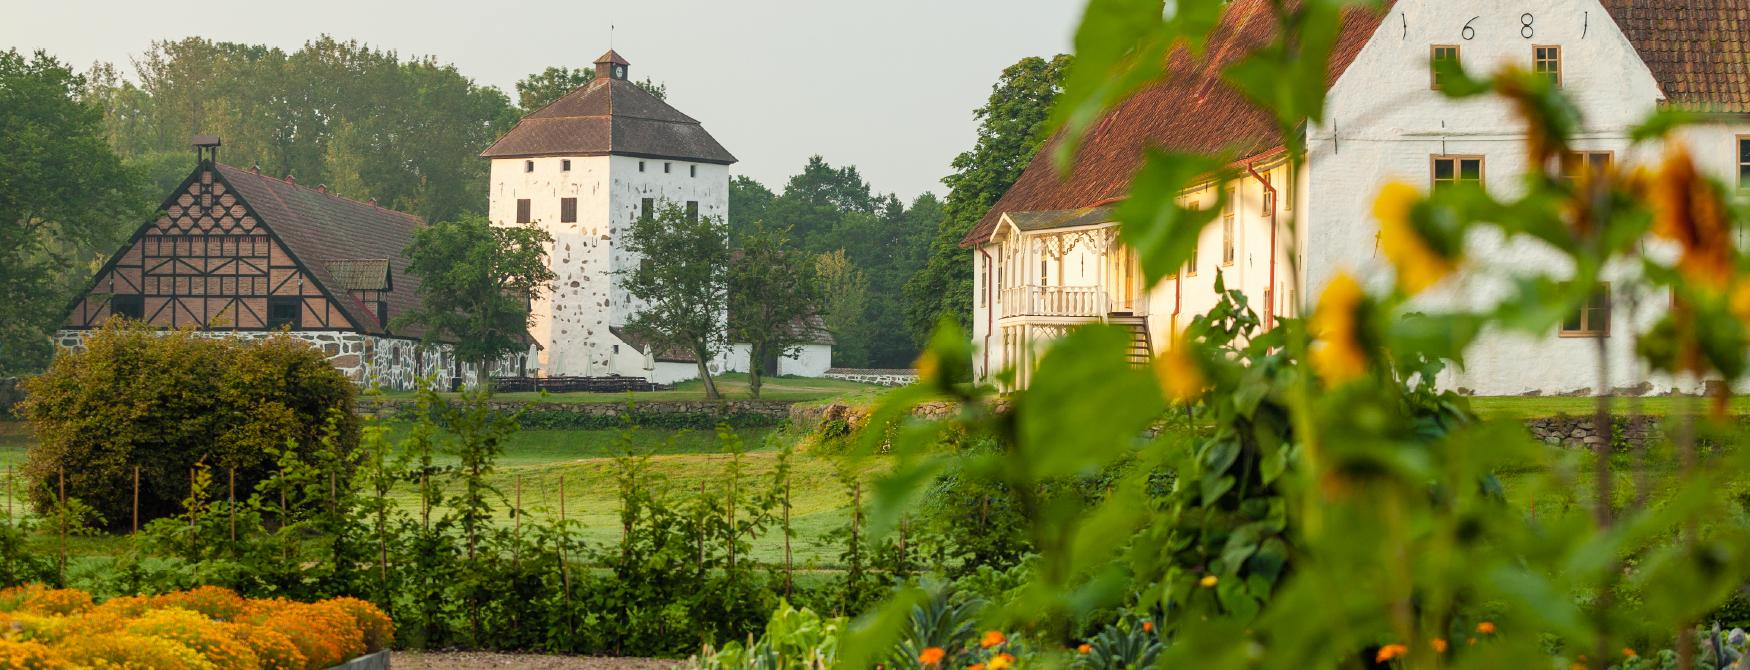 Summer surroundings at Hovdala Castle